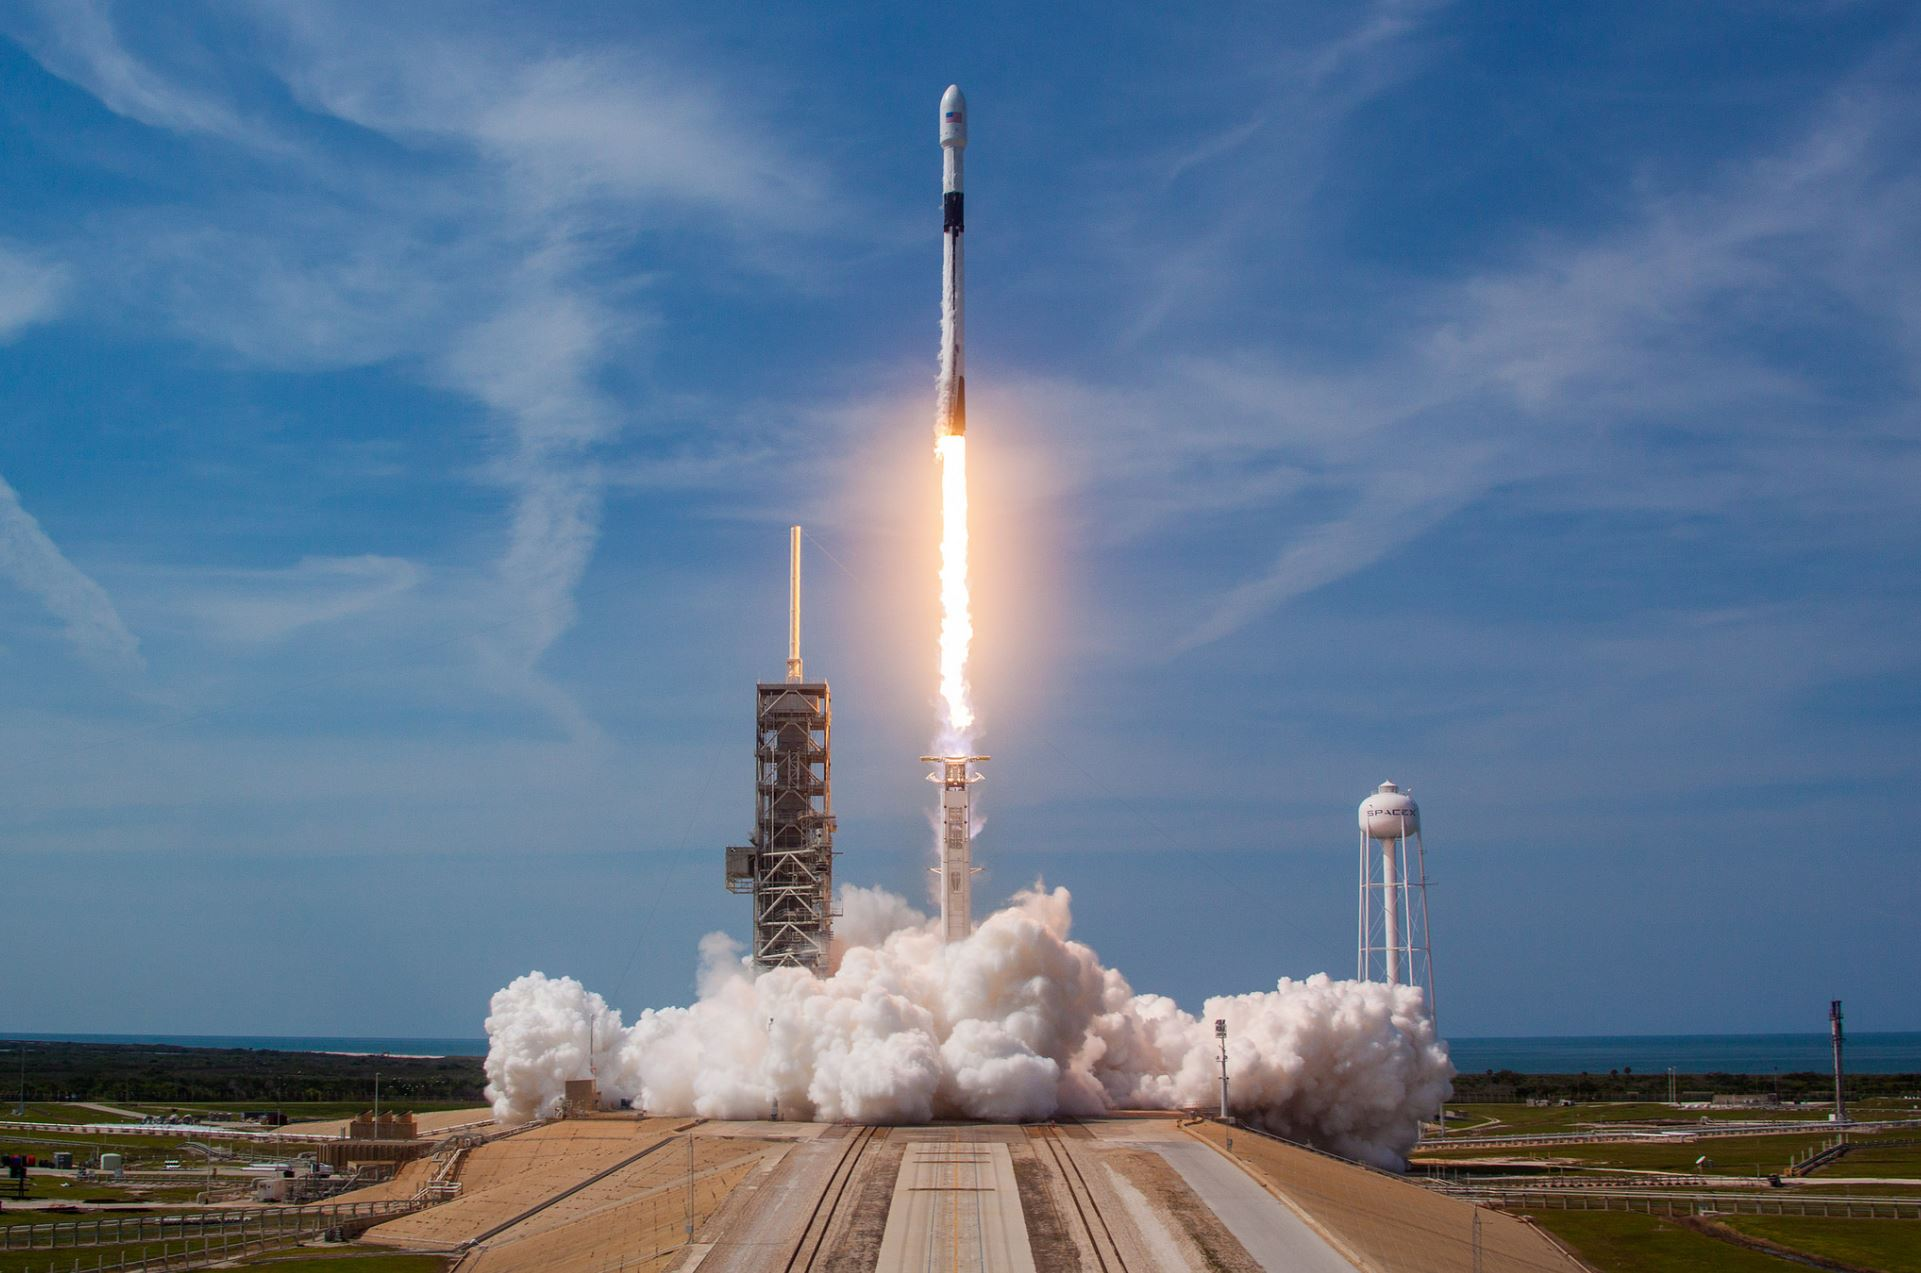 Falcon 9 launch - Image Credit:  SpaceX via flickr